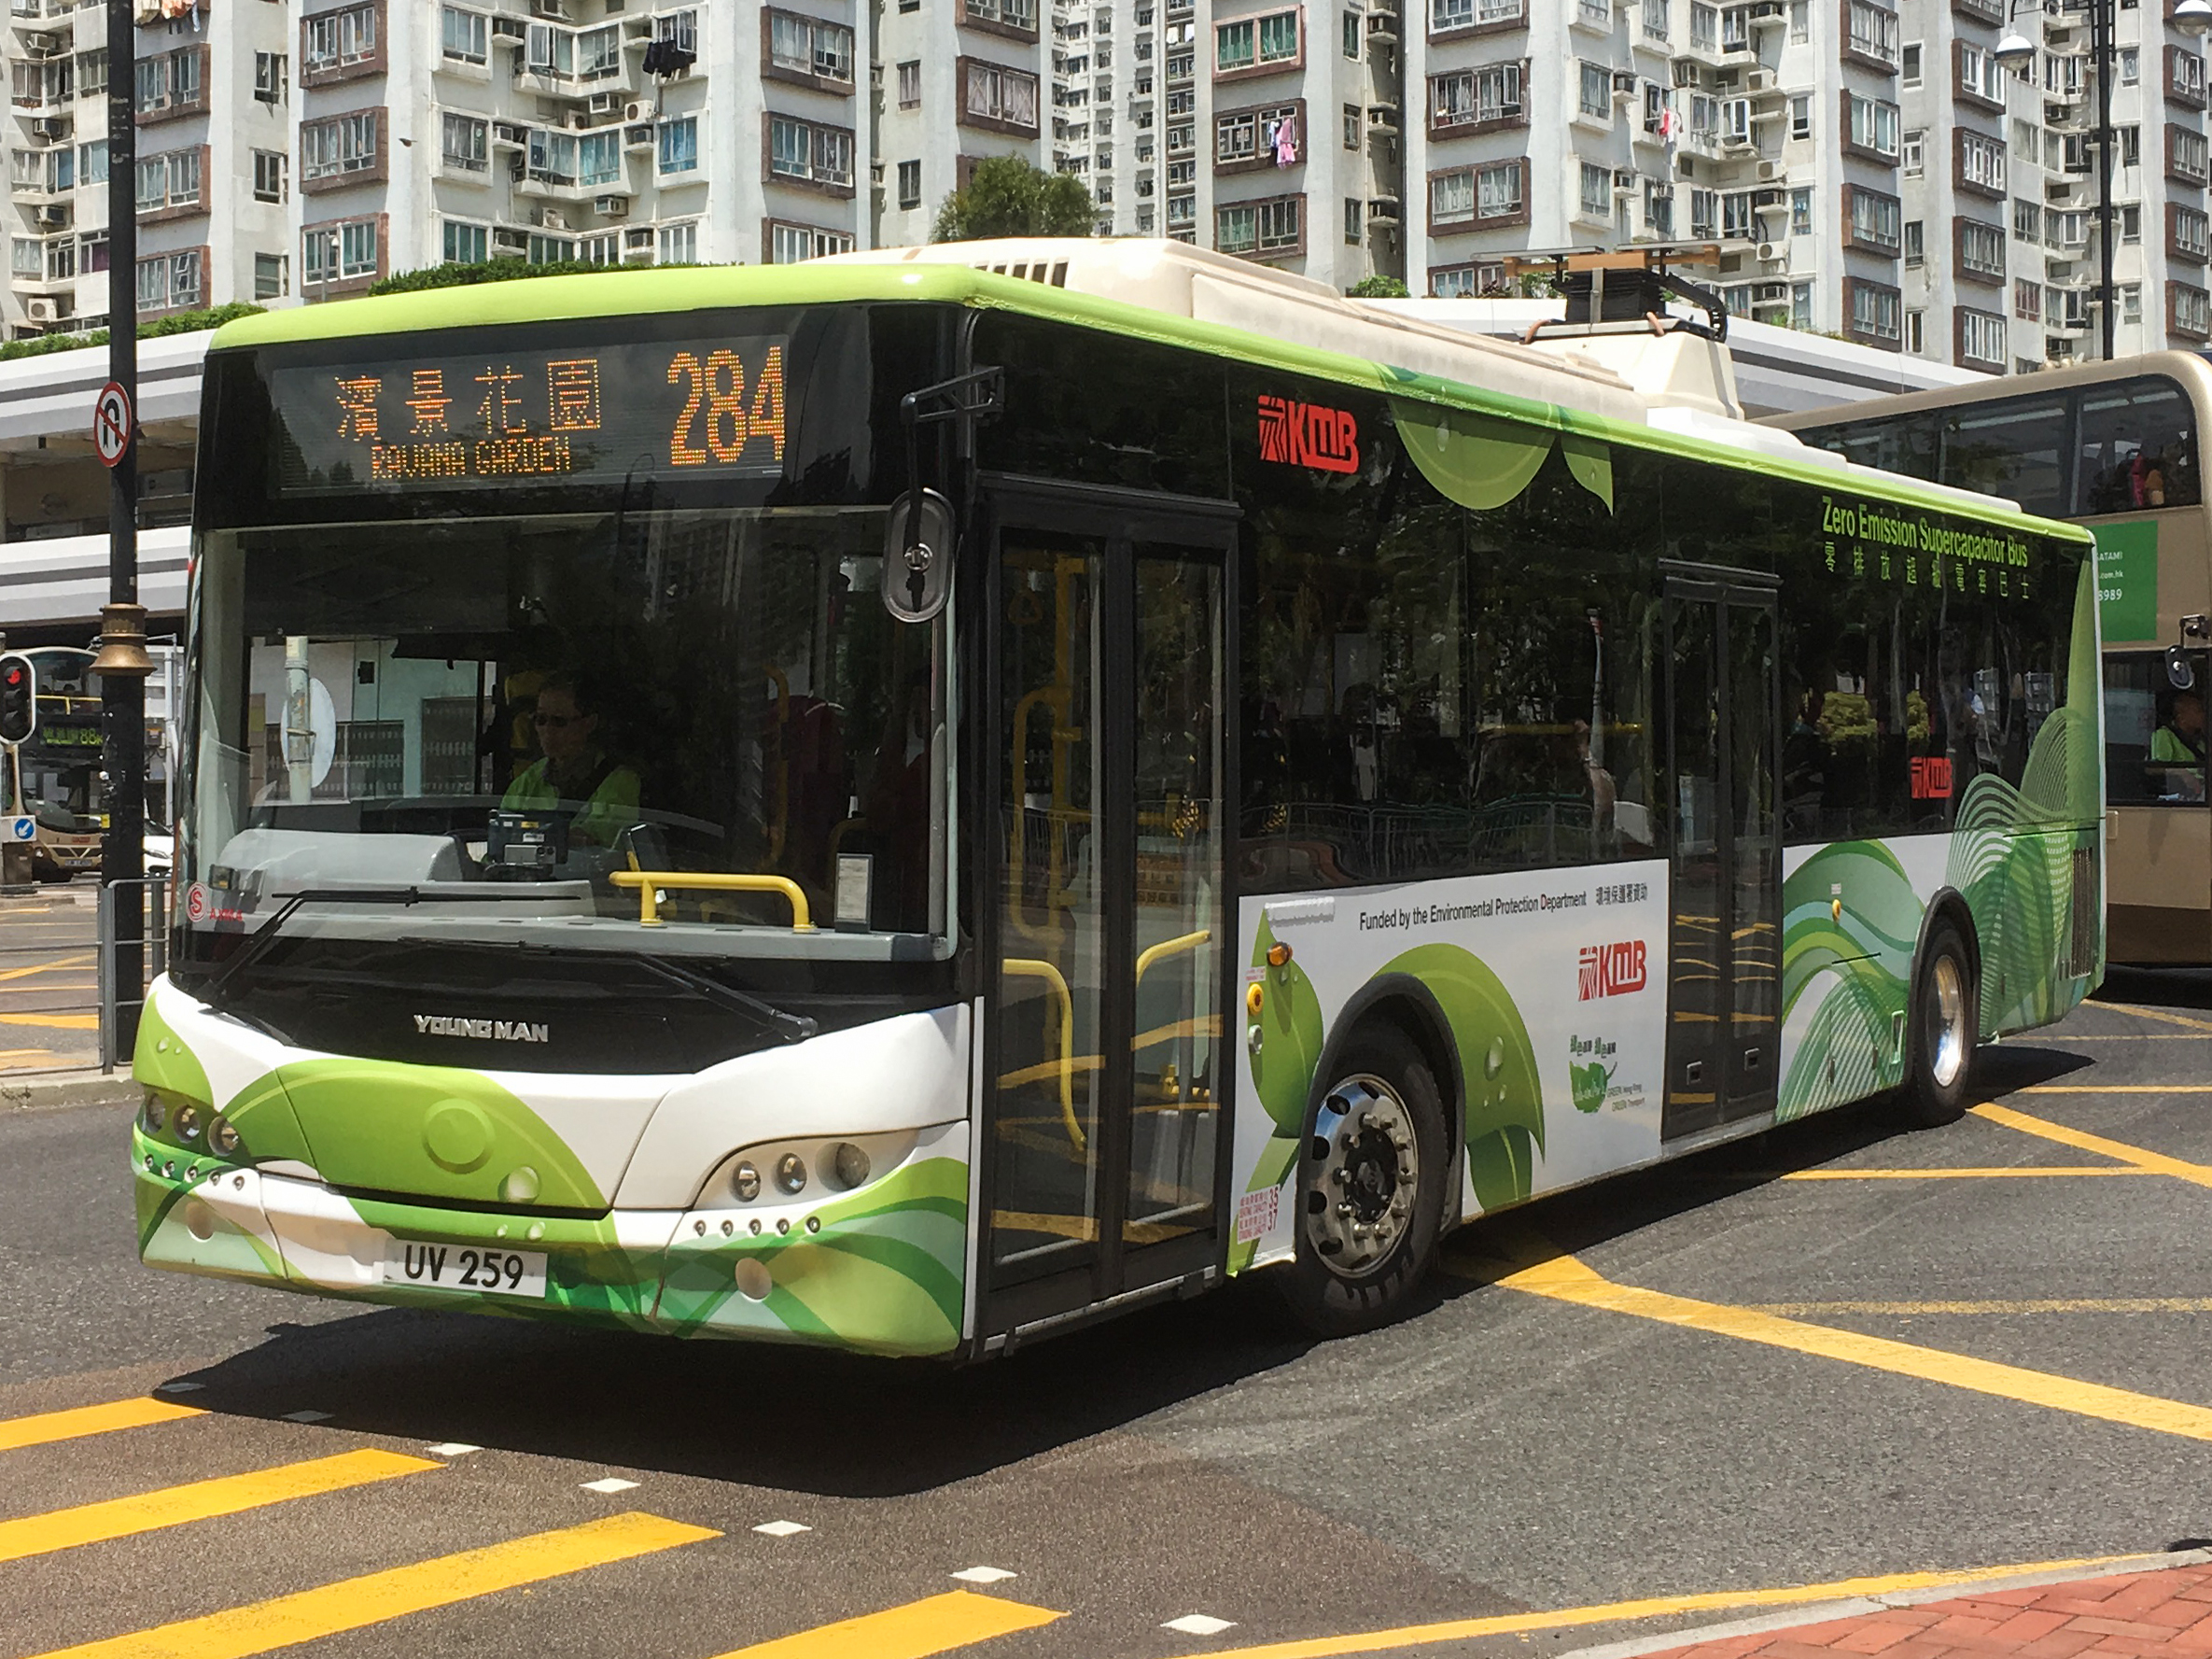 File:Route 284 UV 259 electric bus 2018.jpg